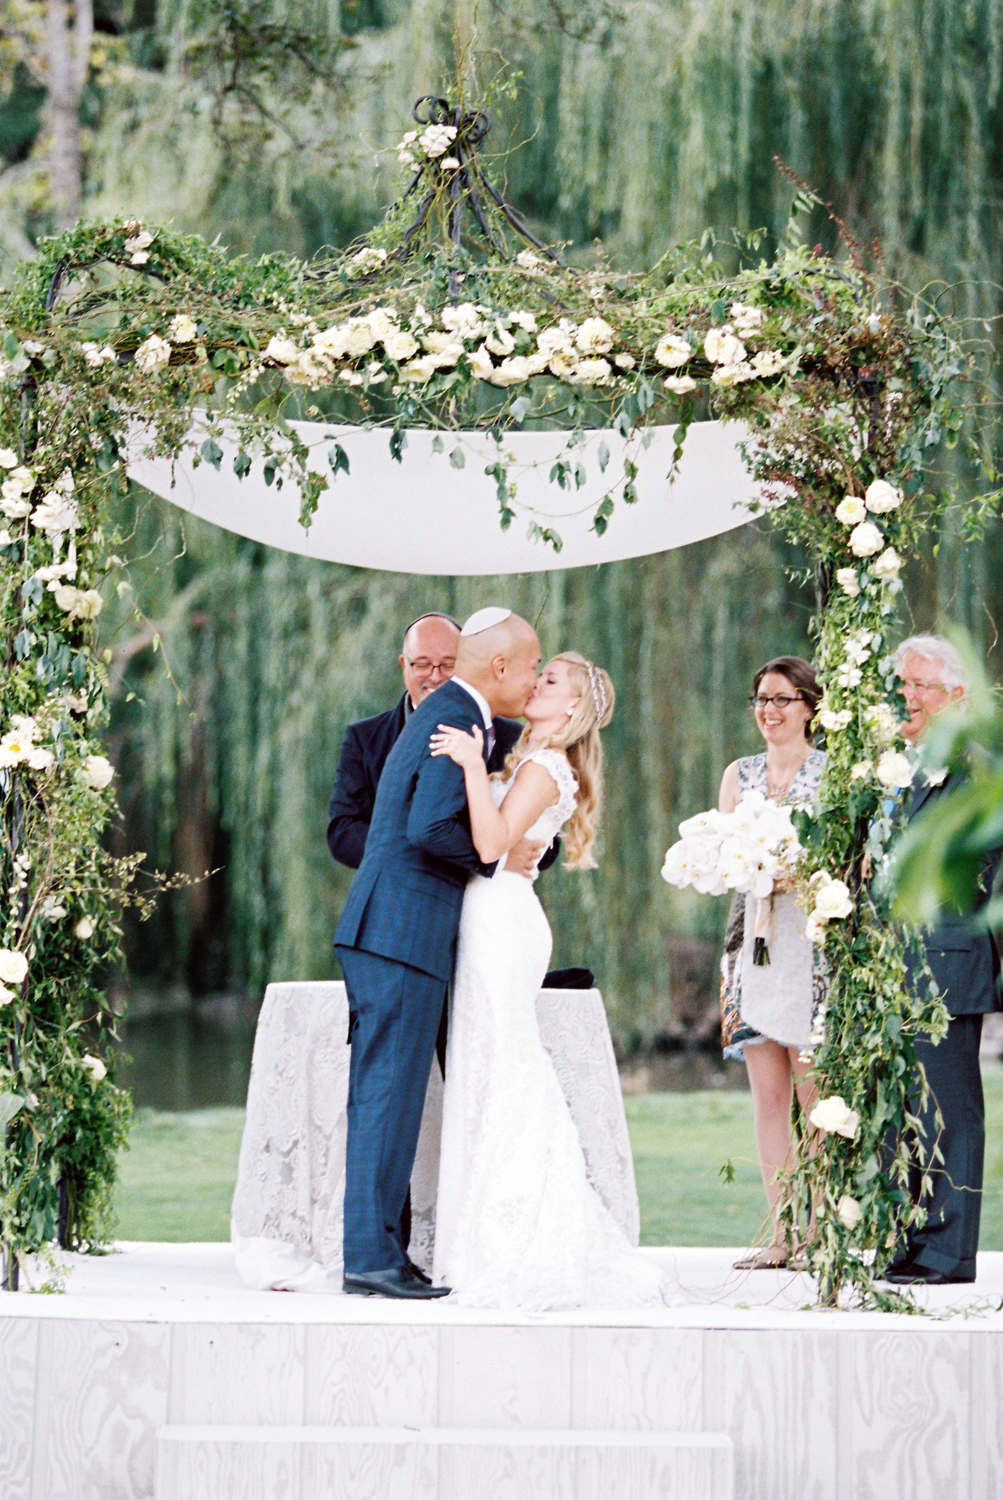 08-the-wedding-chuppah-looked-perfectly-elegant-with-greenery-and-white-flower-decor.jpg